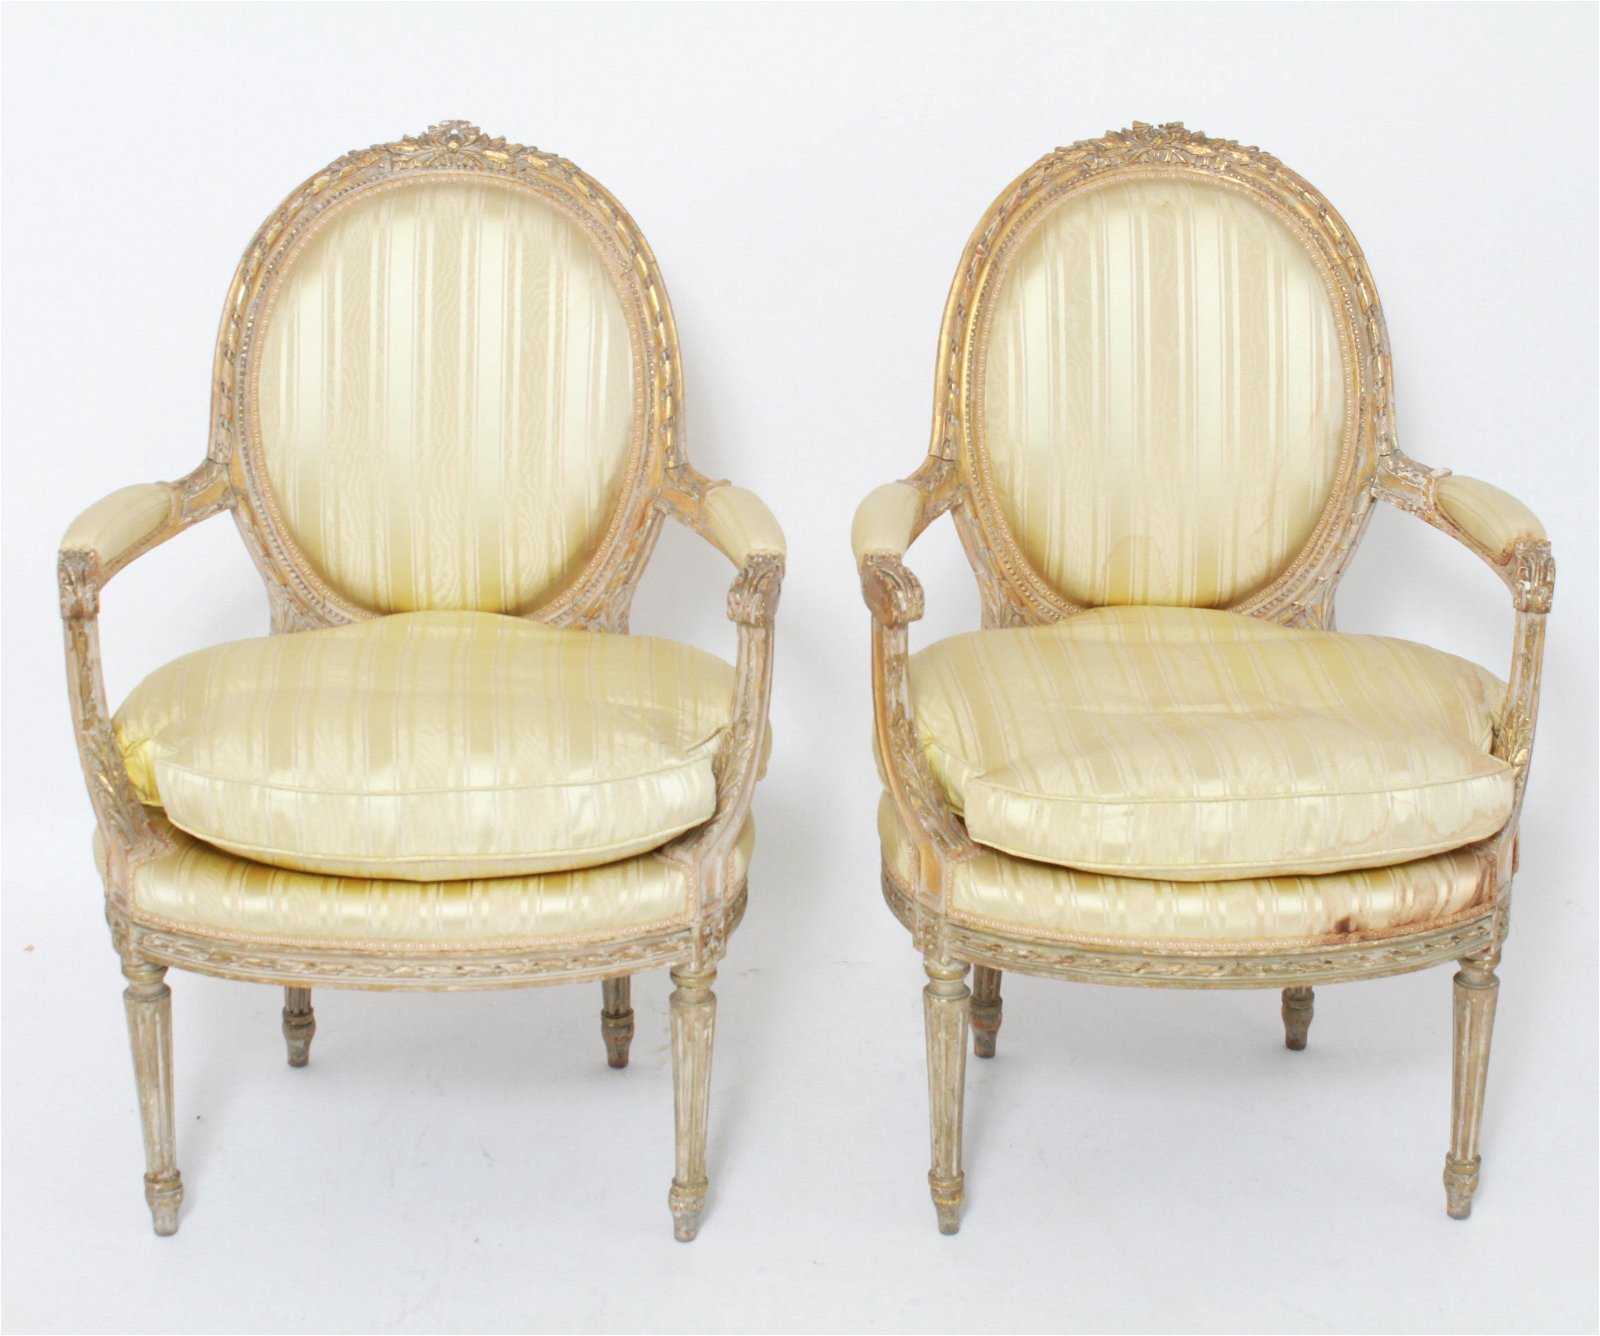 French Louis XVI Style Carved Wood Fauteuils, Pair